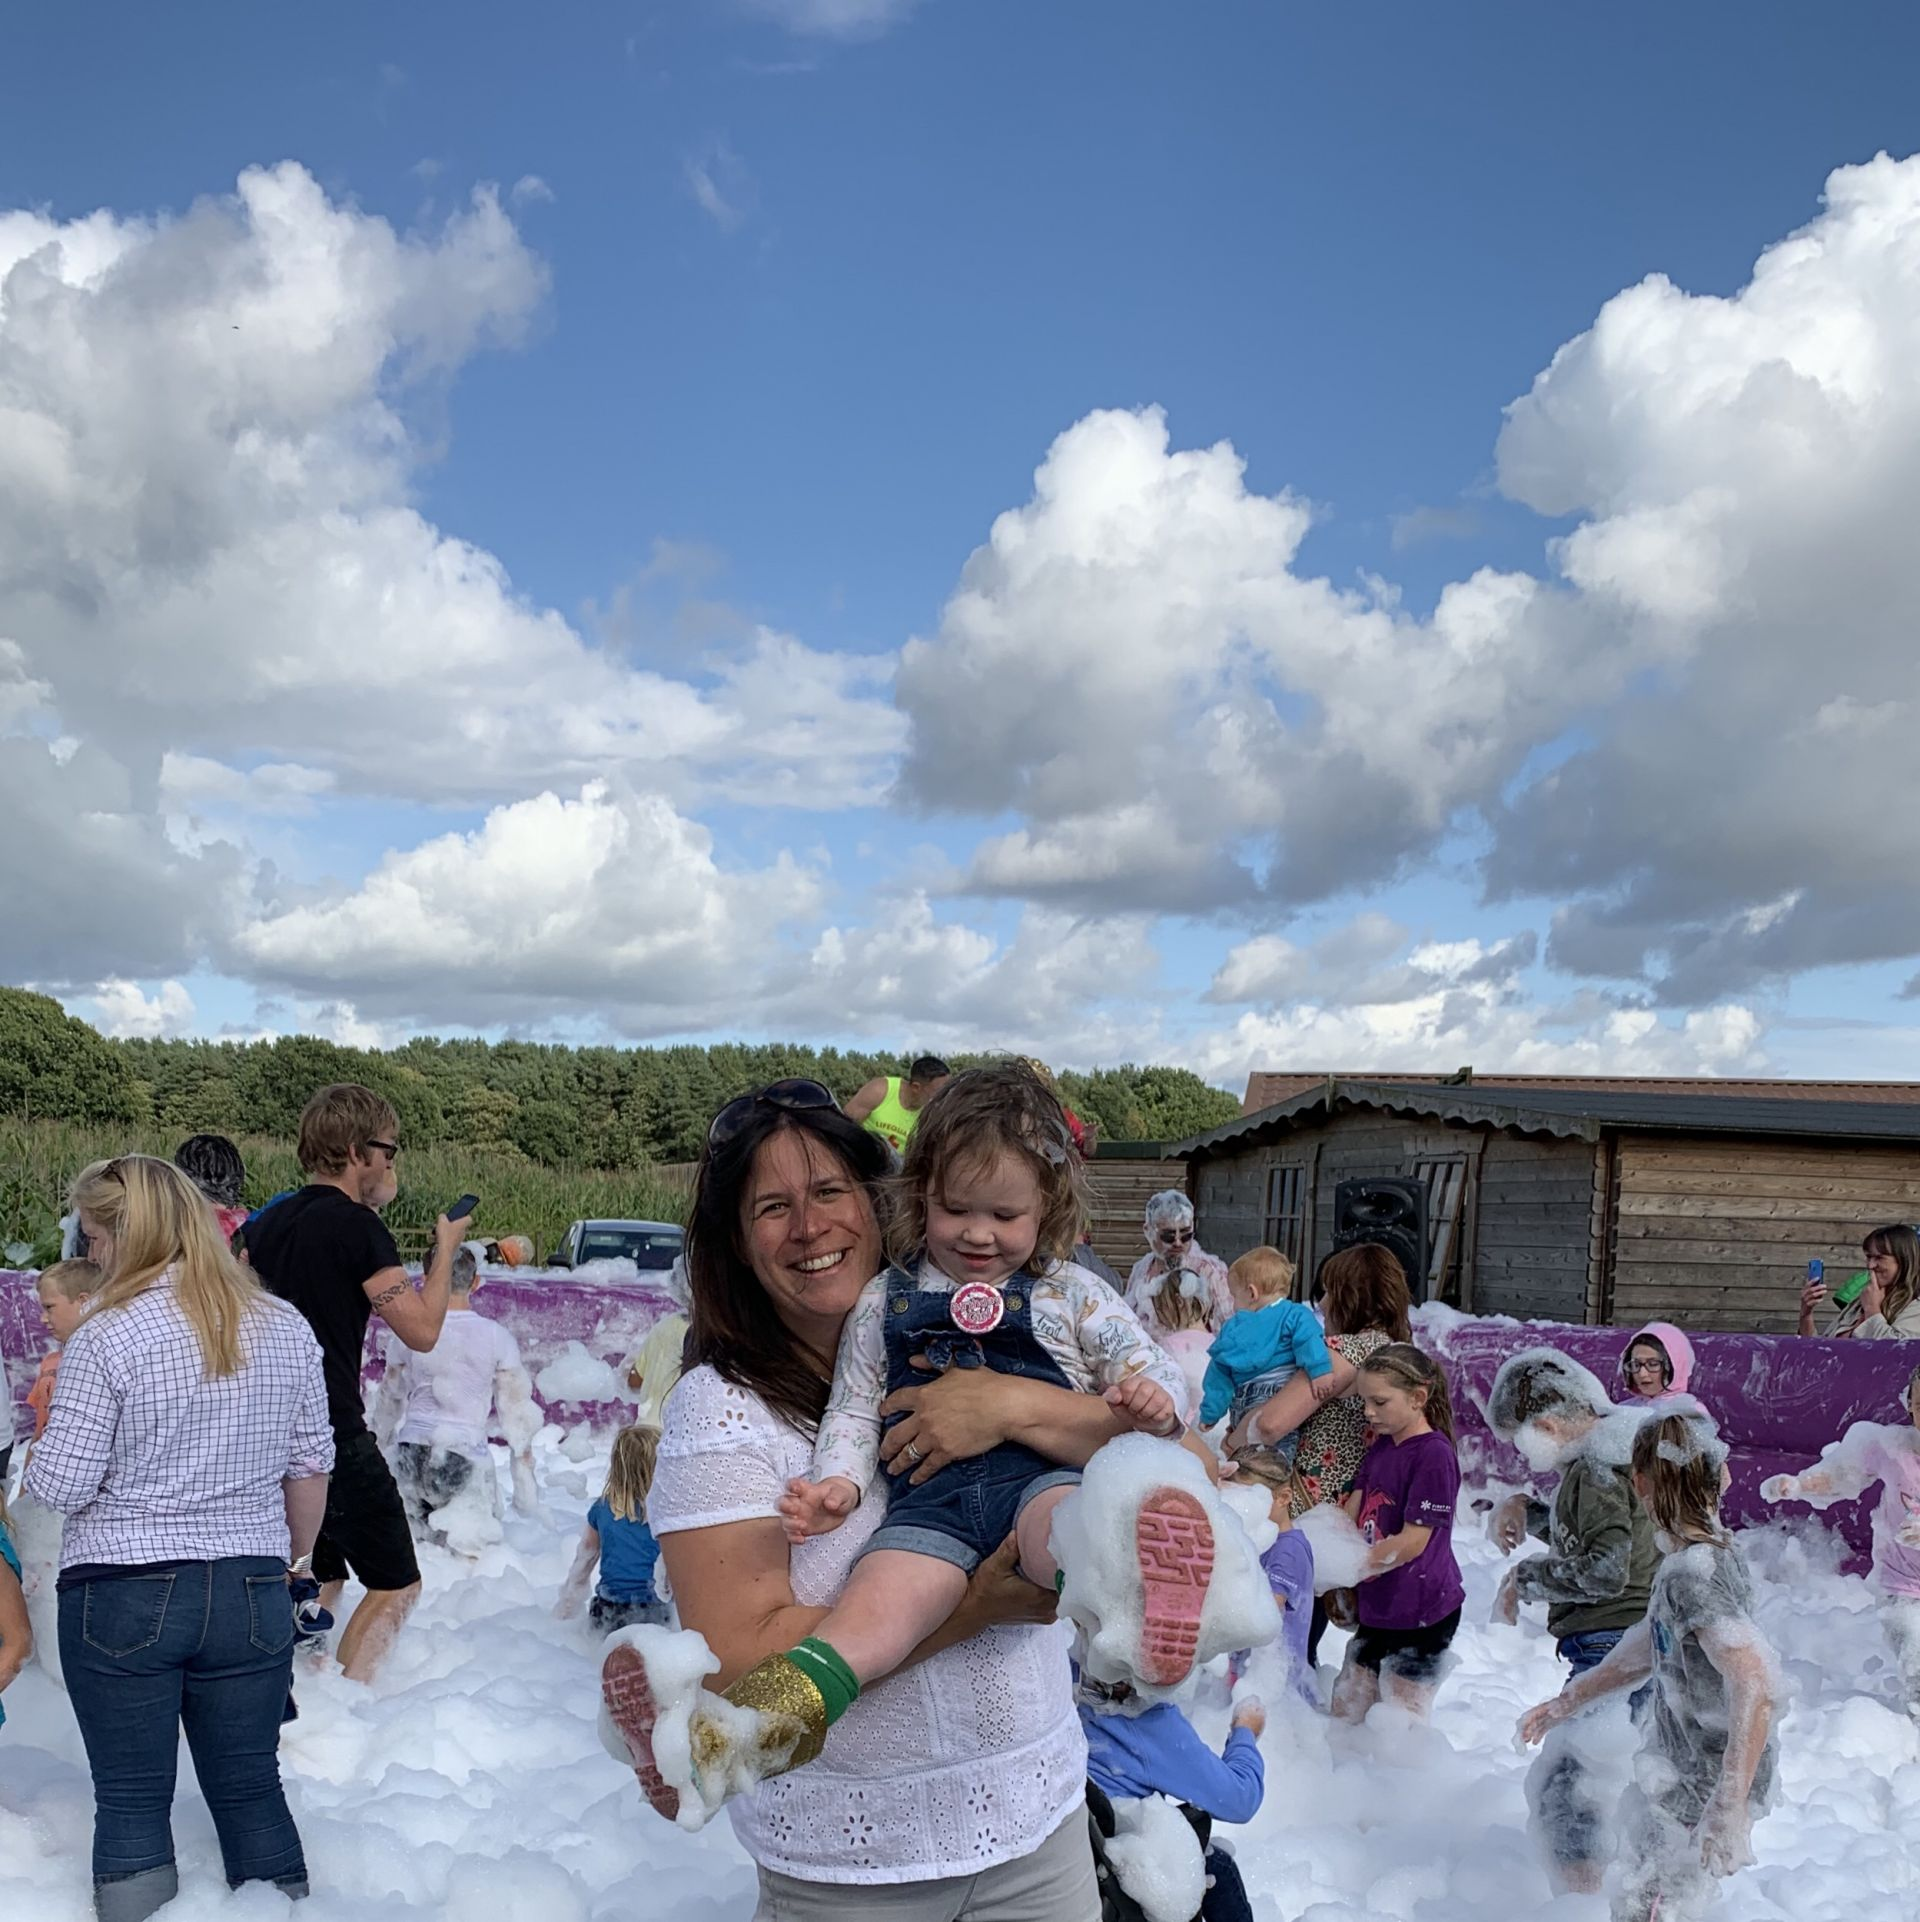 Mum and daughter playing in foam